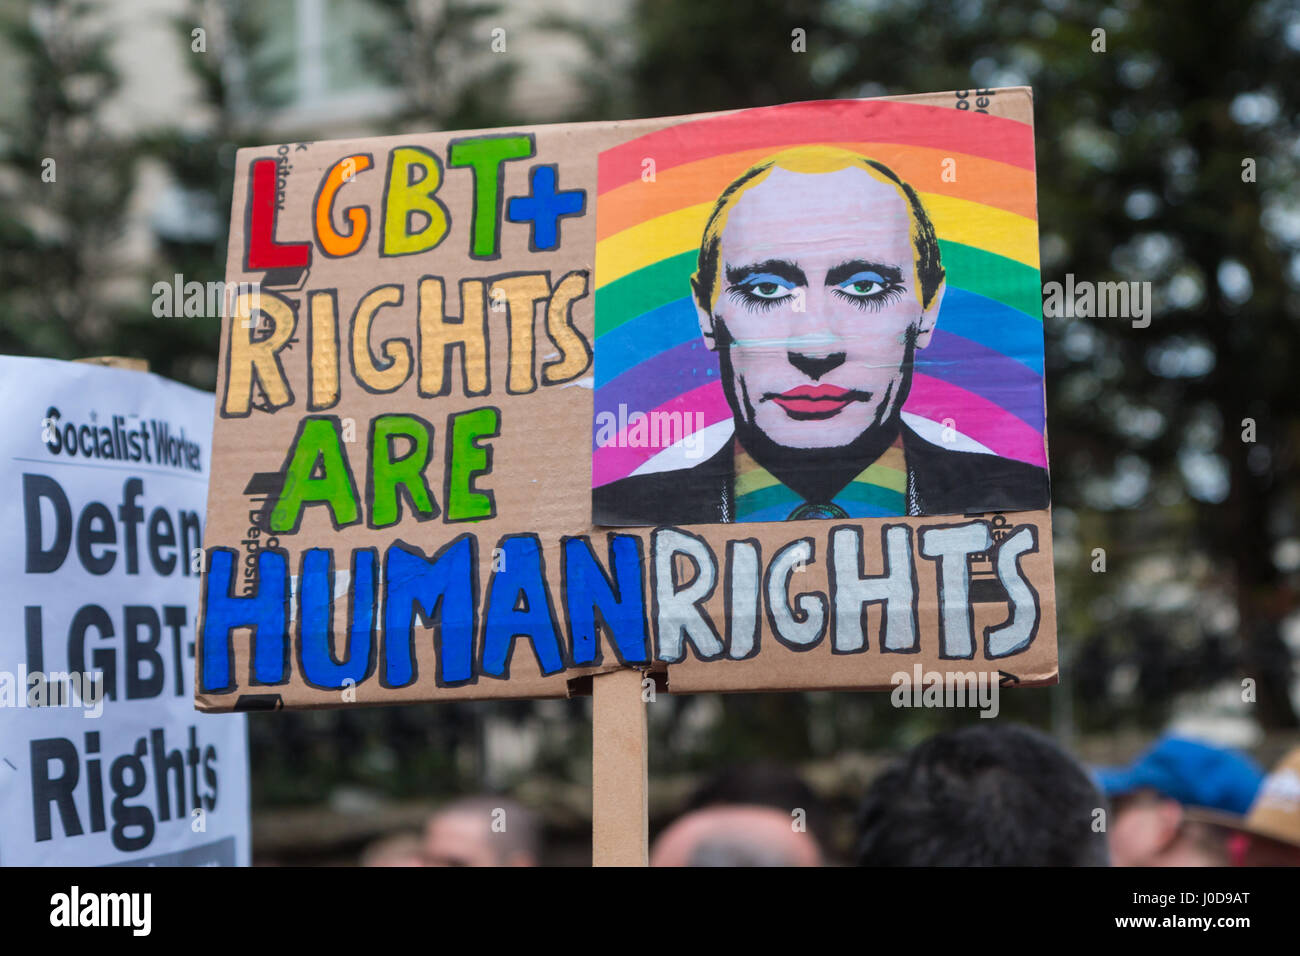 London, UK. 12th Apr, 2017. Placards at the London protest against Chechnya gay 'concentration camps' Credit: - Stock Image